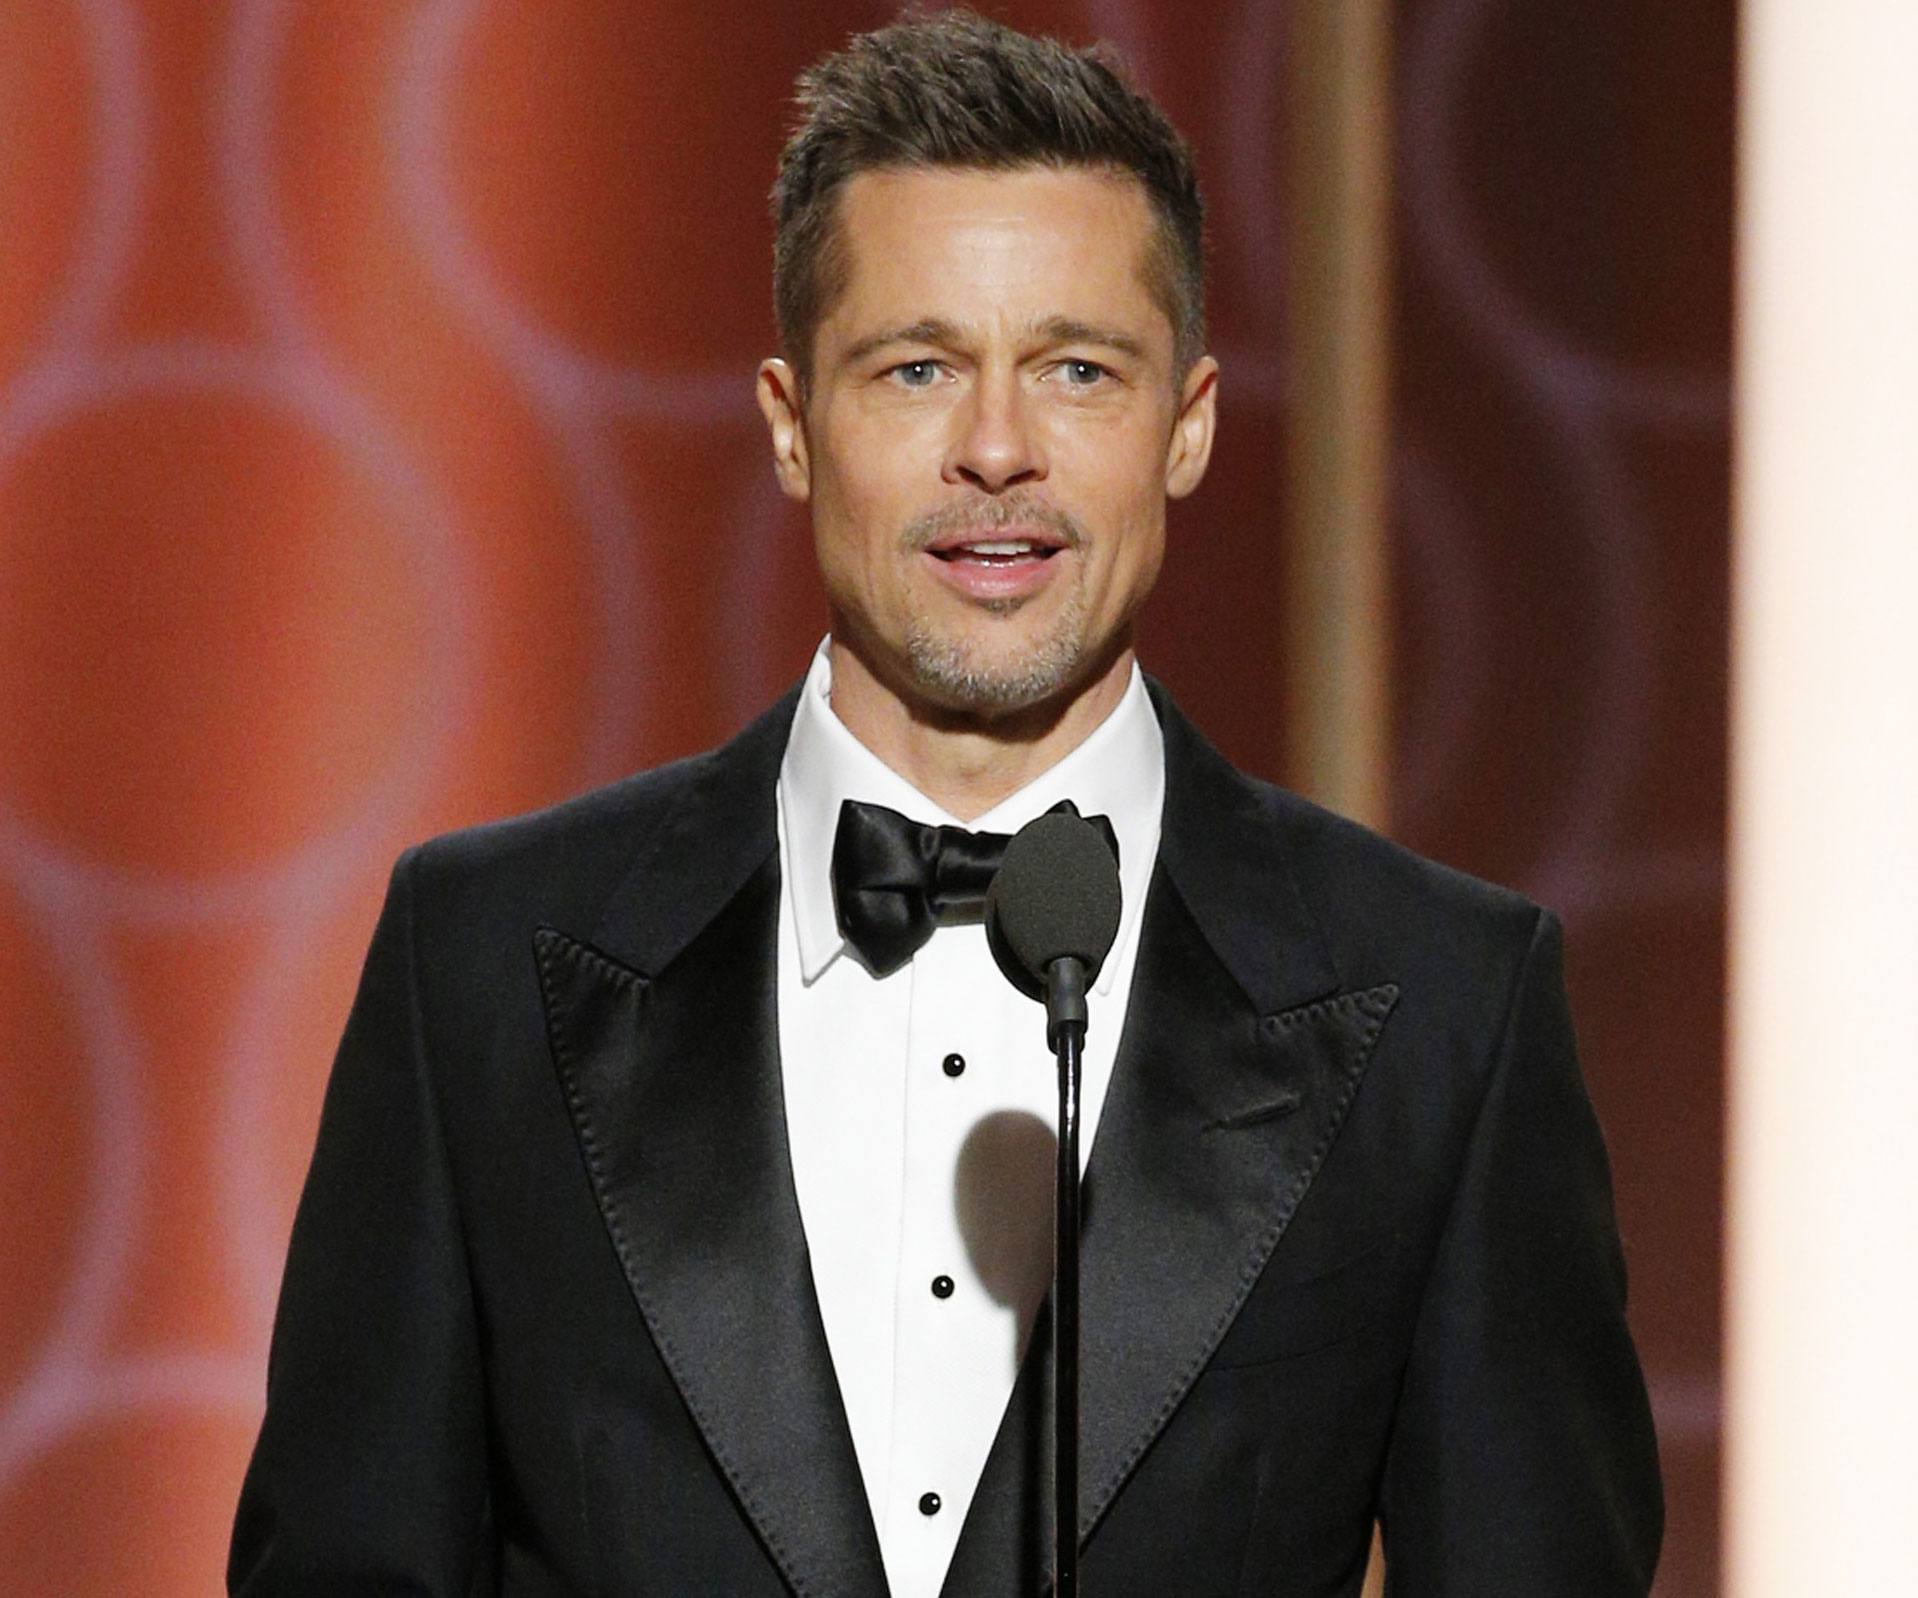 Brad Pitt Is Producing A Movie About The Harvey Weinstein Investigation